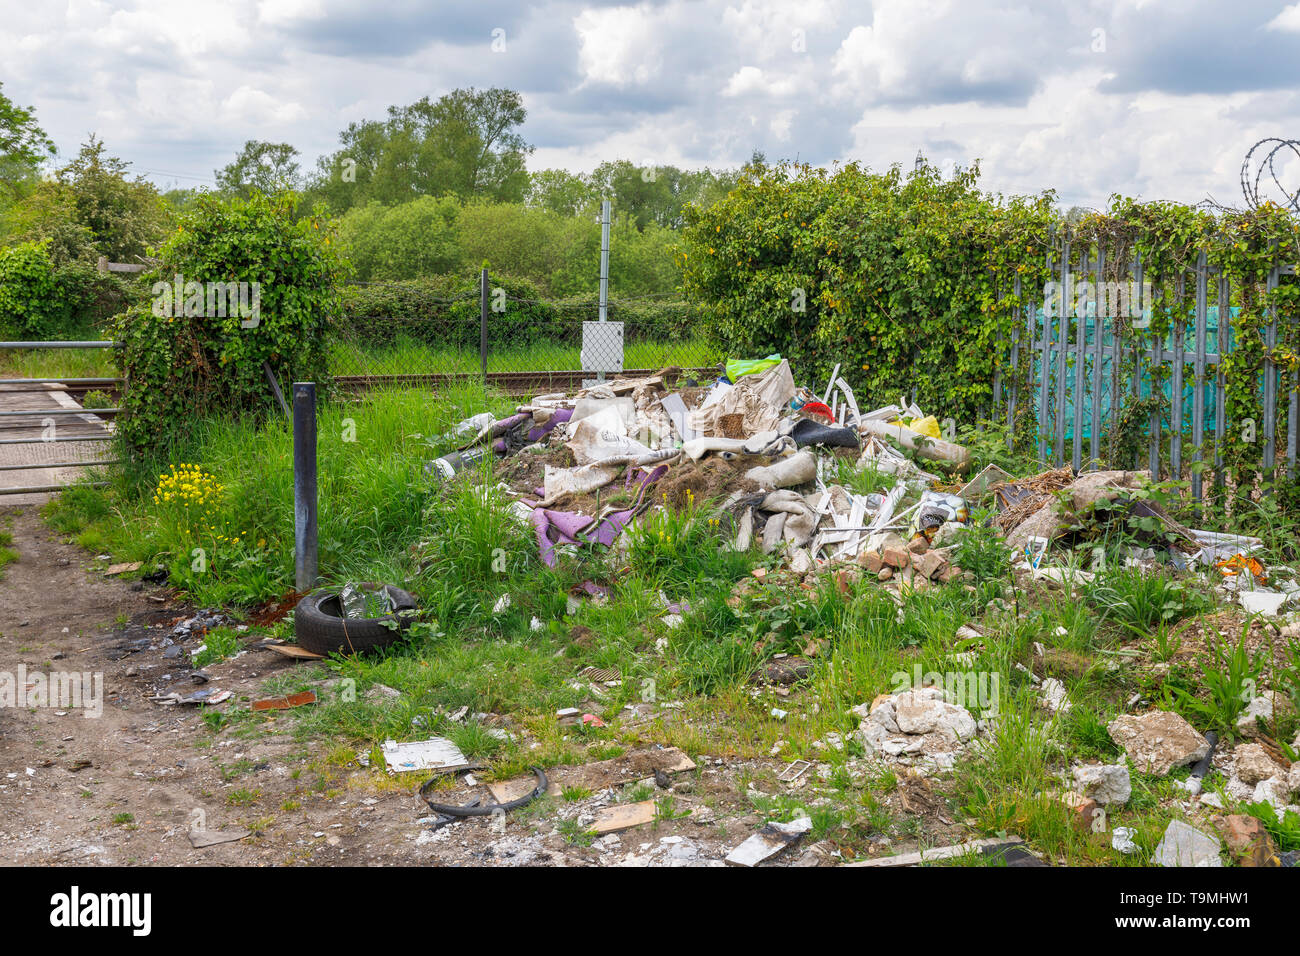 A pile of rubbish, rubble and trash from illegal fly tipping dumped beside a railway line in Nursling, Test Valley, Southampton, Hampshire, UK Stock Photo